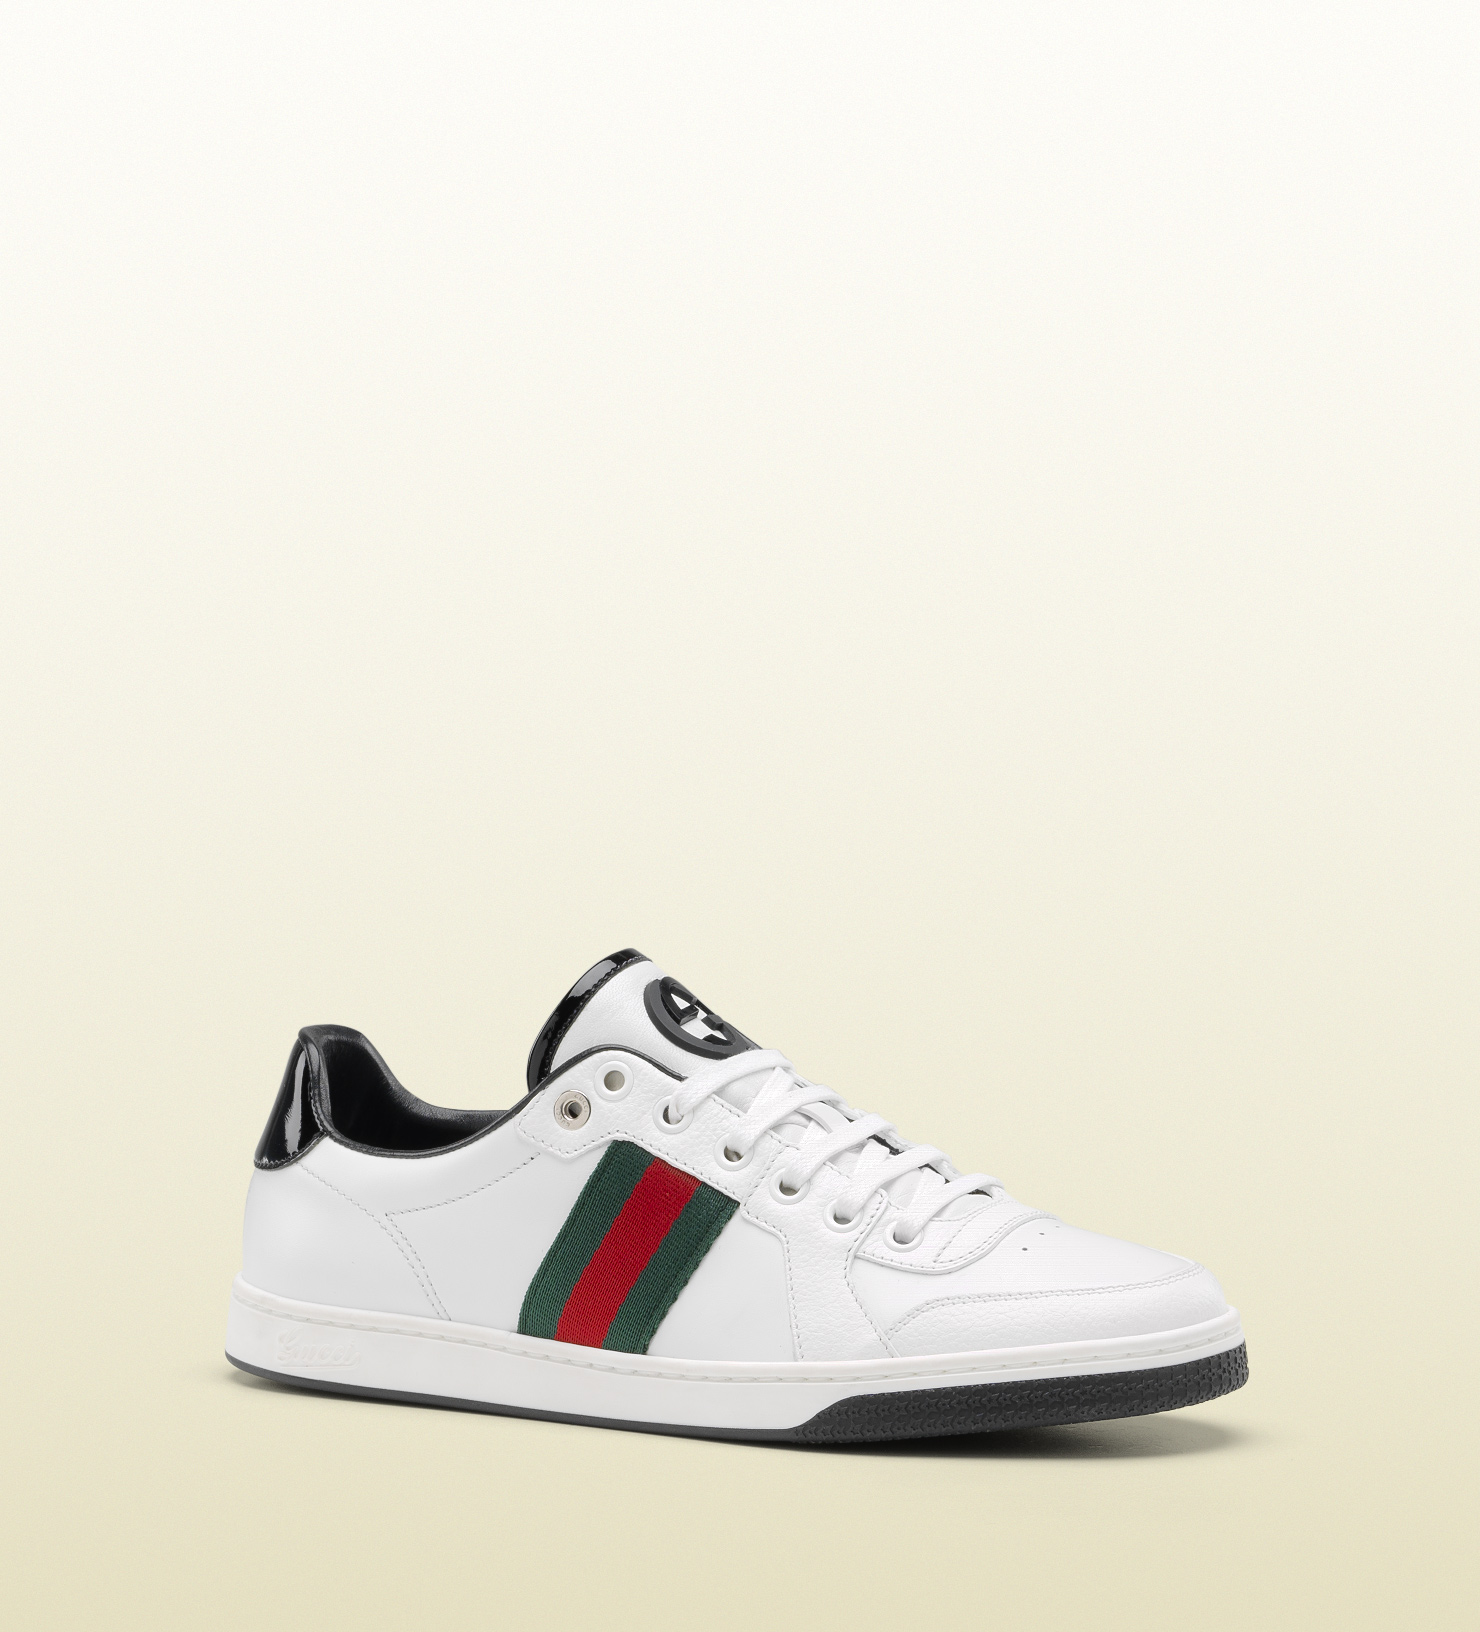 6cf298f7b Gucci Coda Web Stripe Low Top Laceup Sneaker in White for Men - Lyst